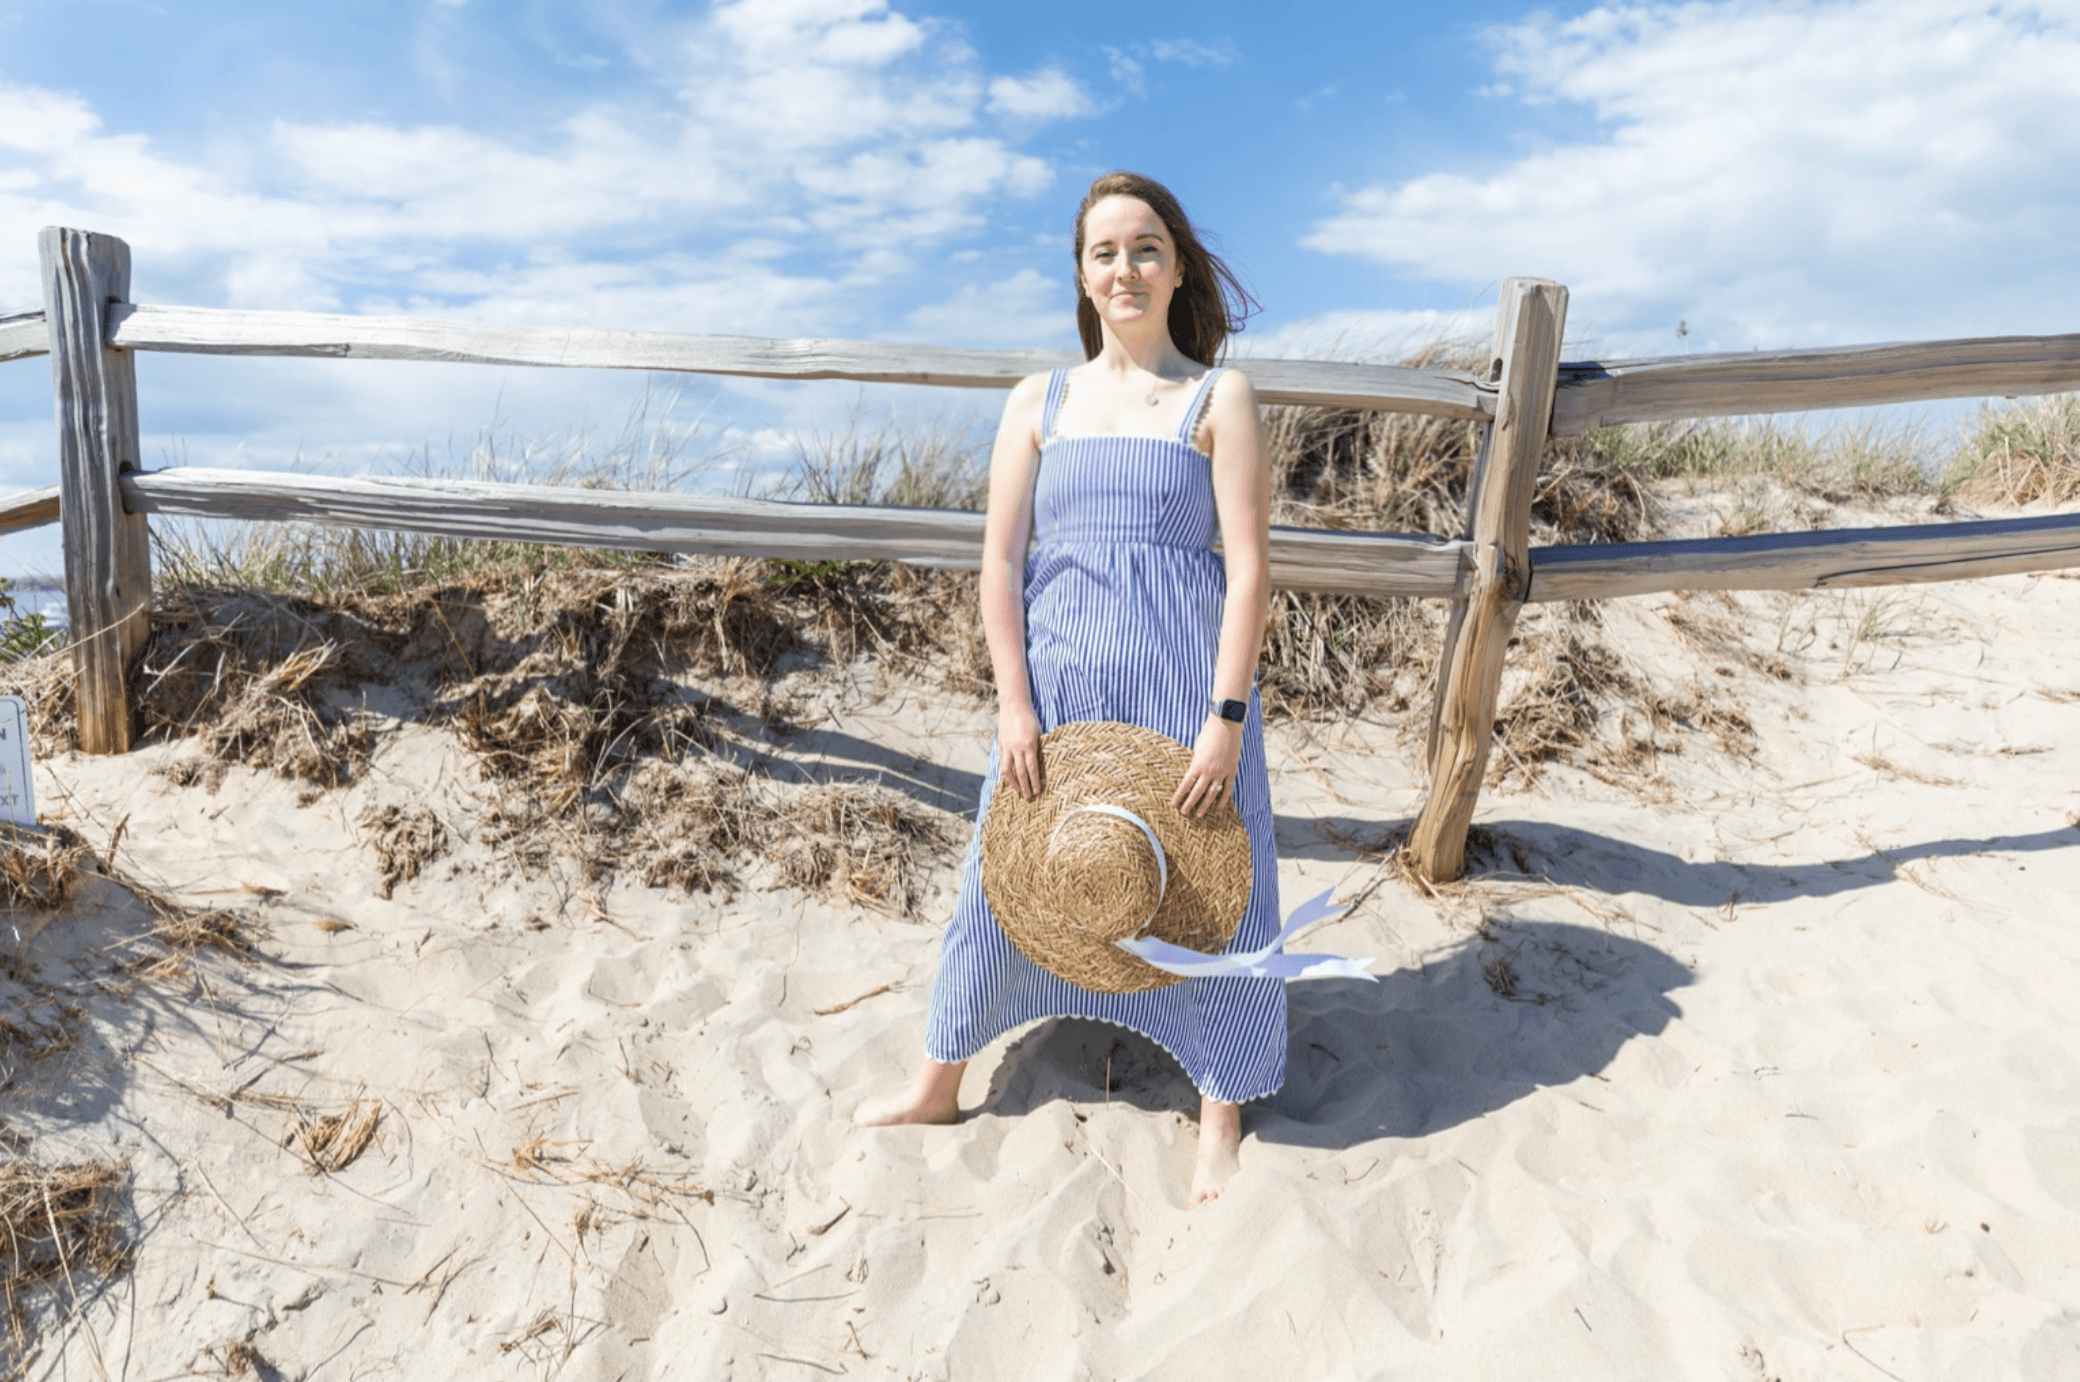 Tuckernuck Blue and White Striped Beachy Maxi Dress with Scallop Trim Styled by Annie Fairfax